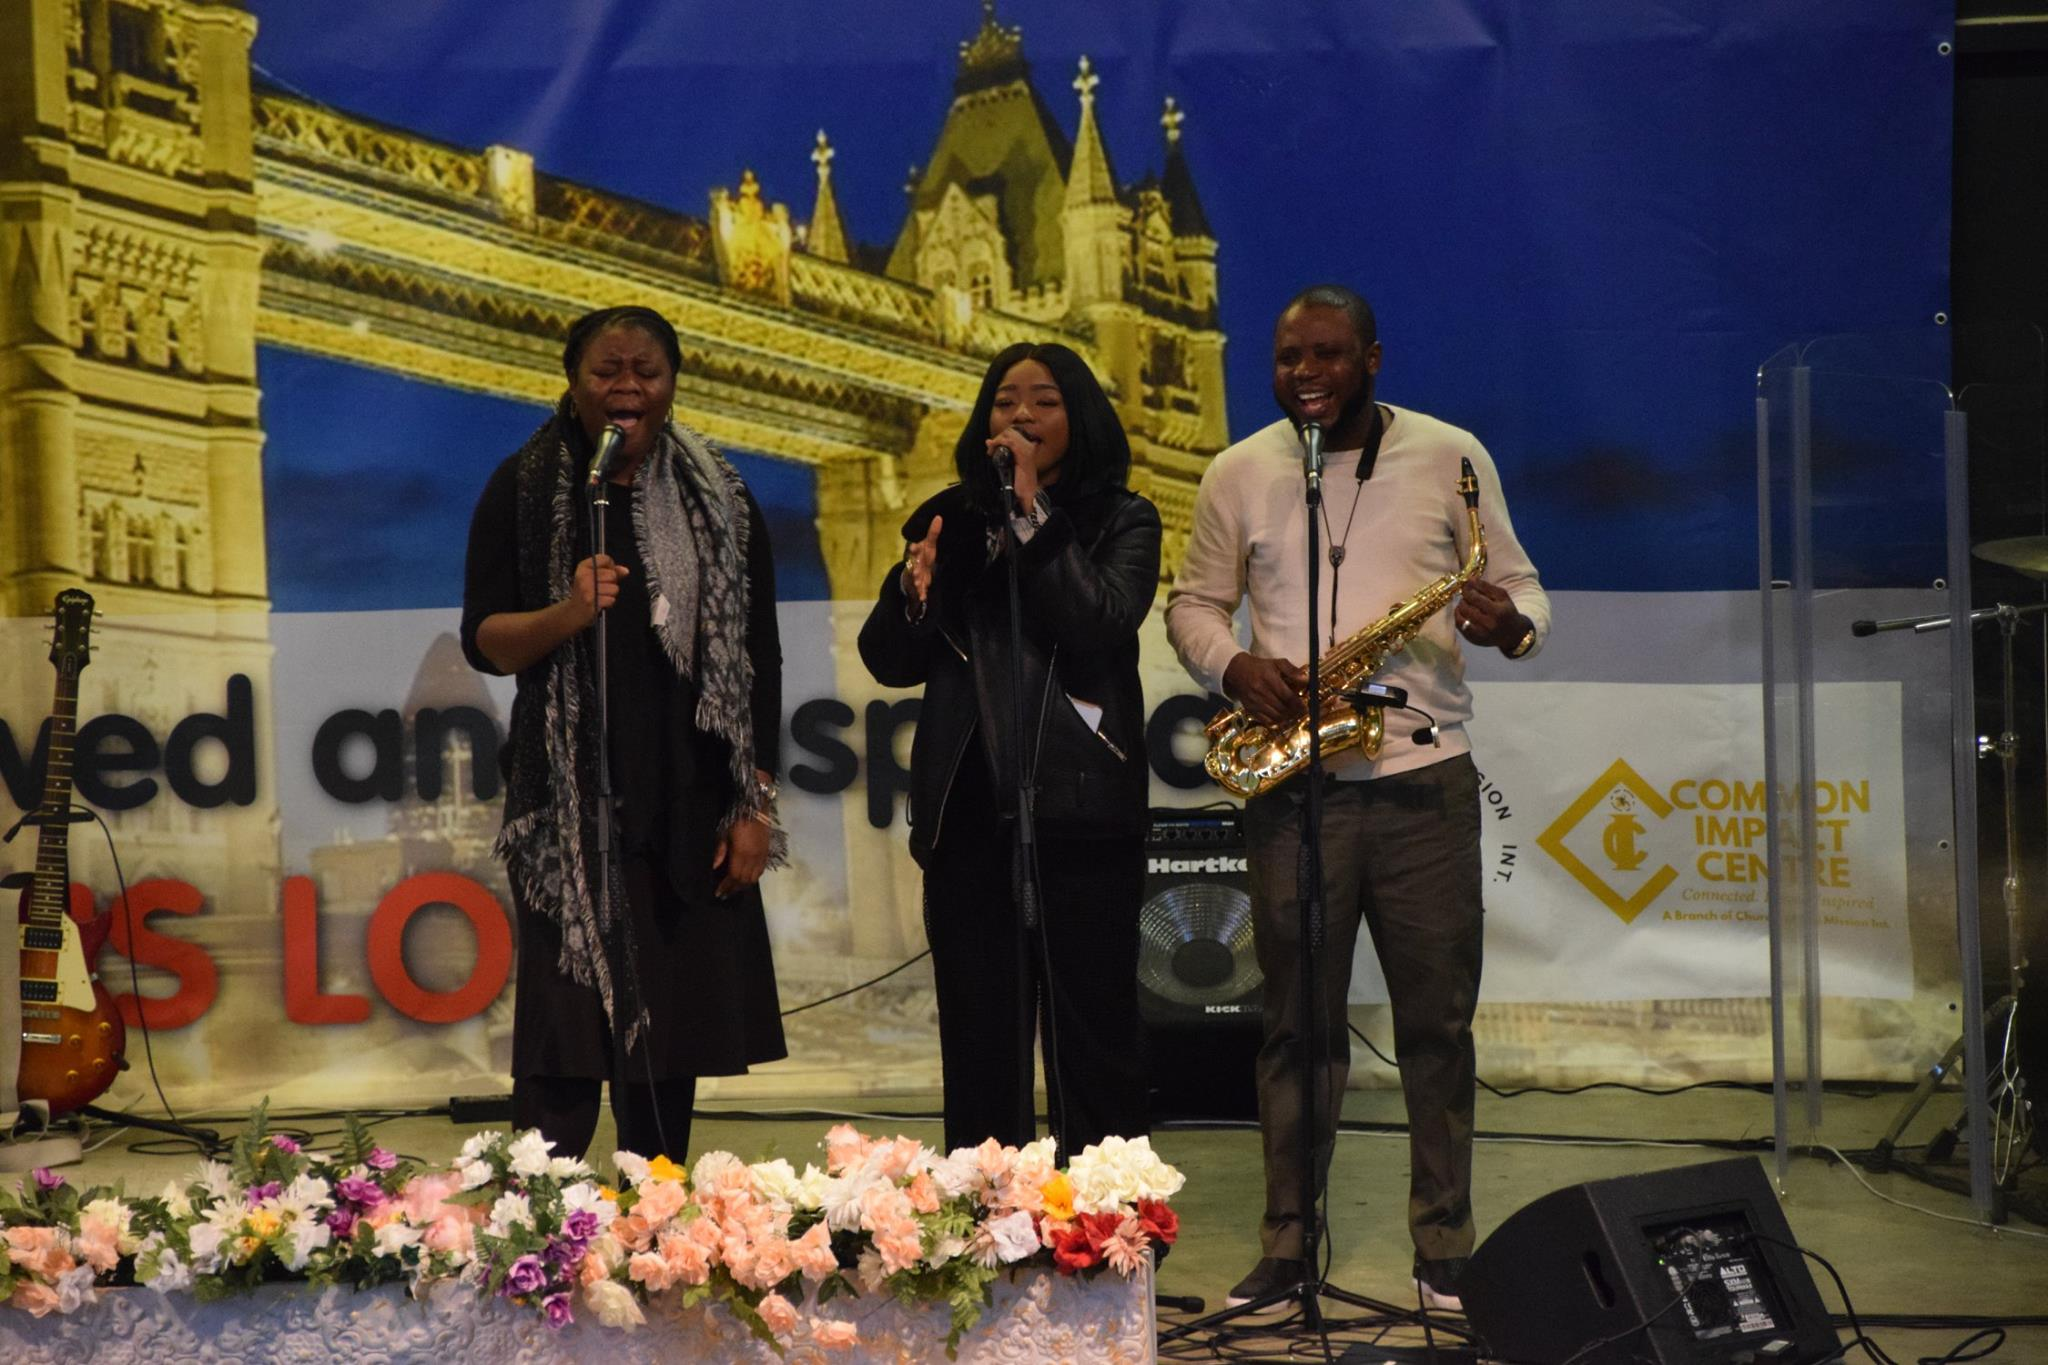 The Emergence Leadership Conference 2017 - Church Of God Mission International - Common Impact Centre - London 21.jpg